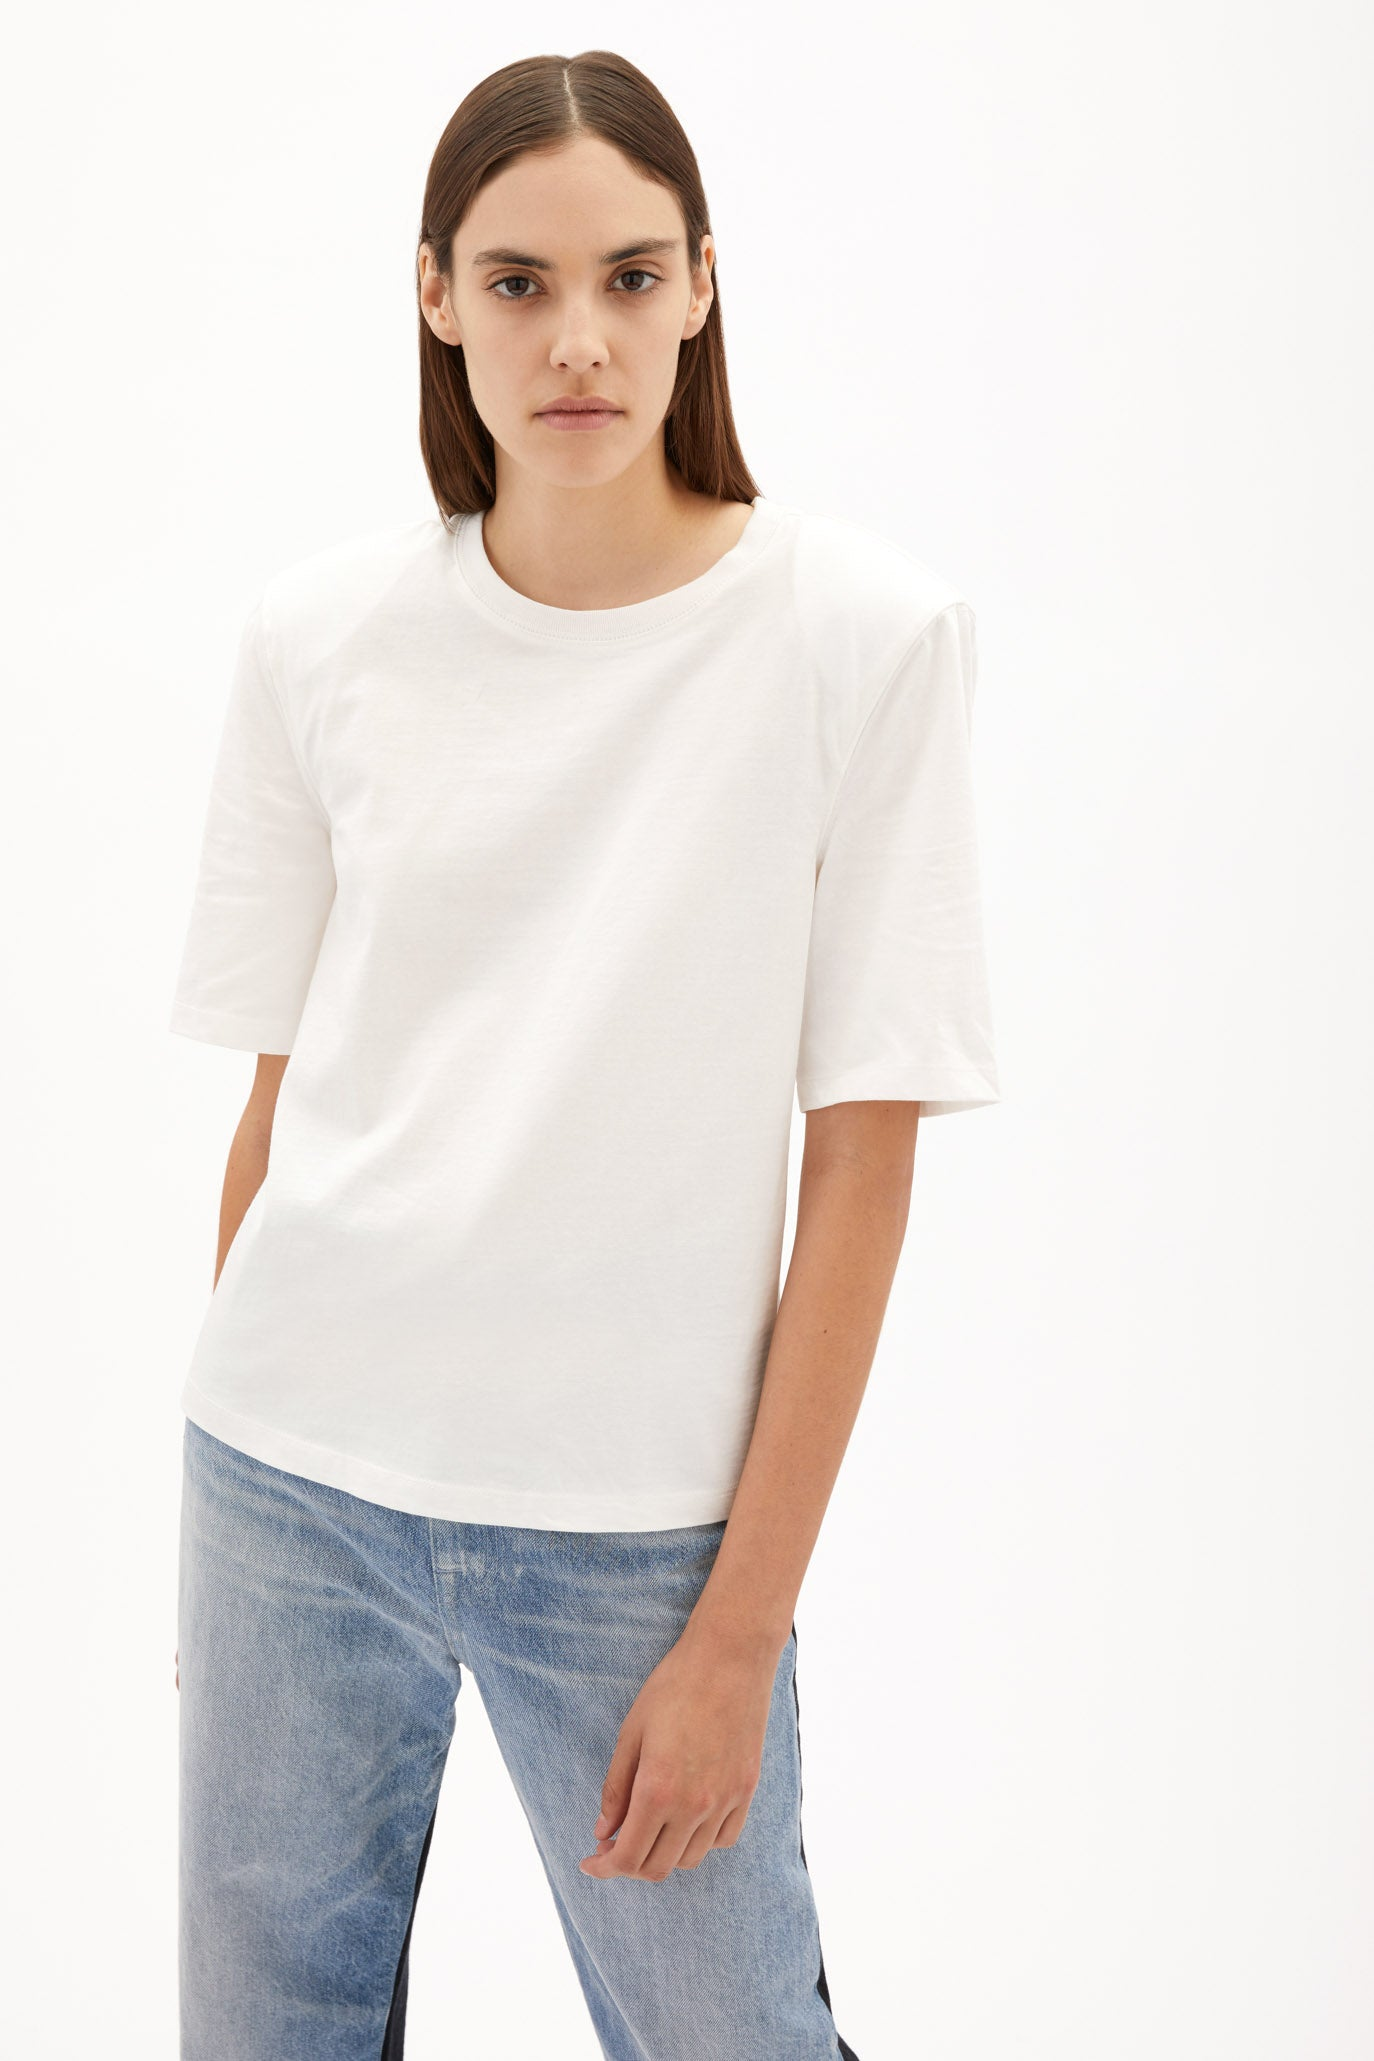 Kyler Organic Cotton Tee